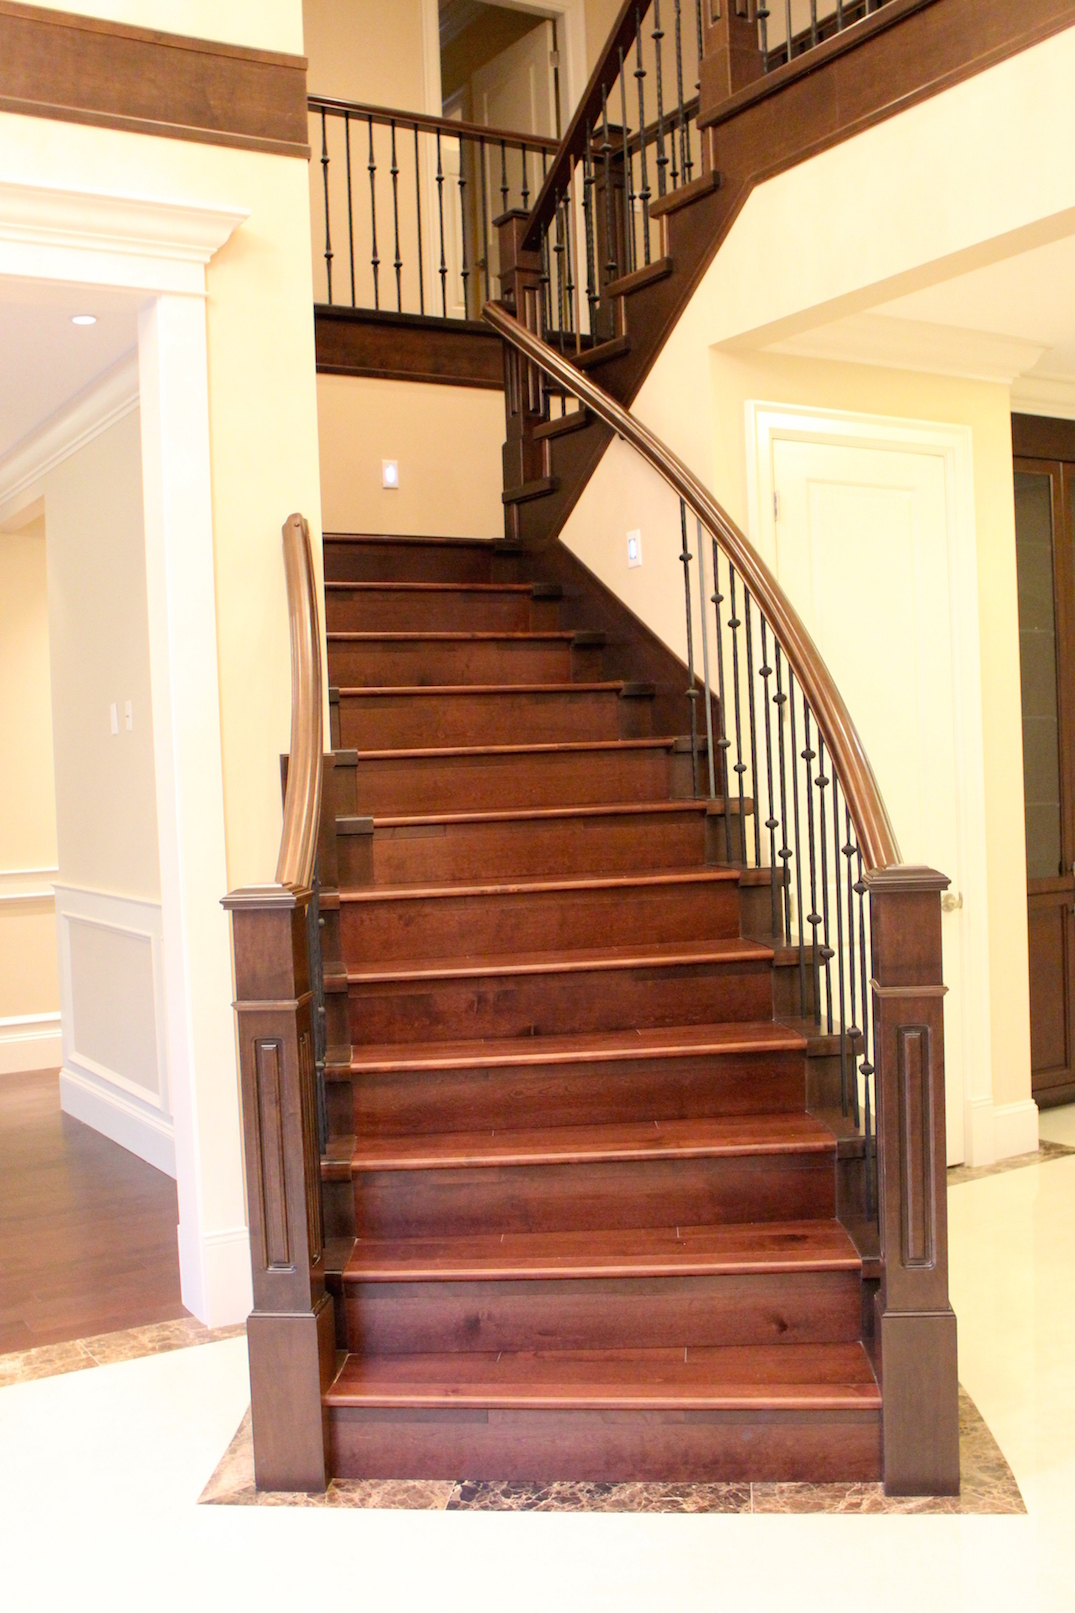 Wood stairs flooring isntaller carpet laminate for Hardwood floors on stairs